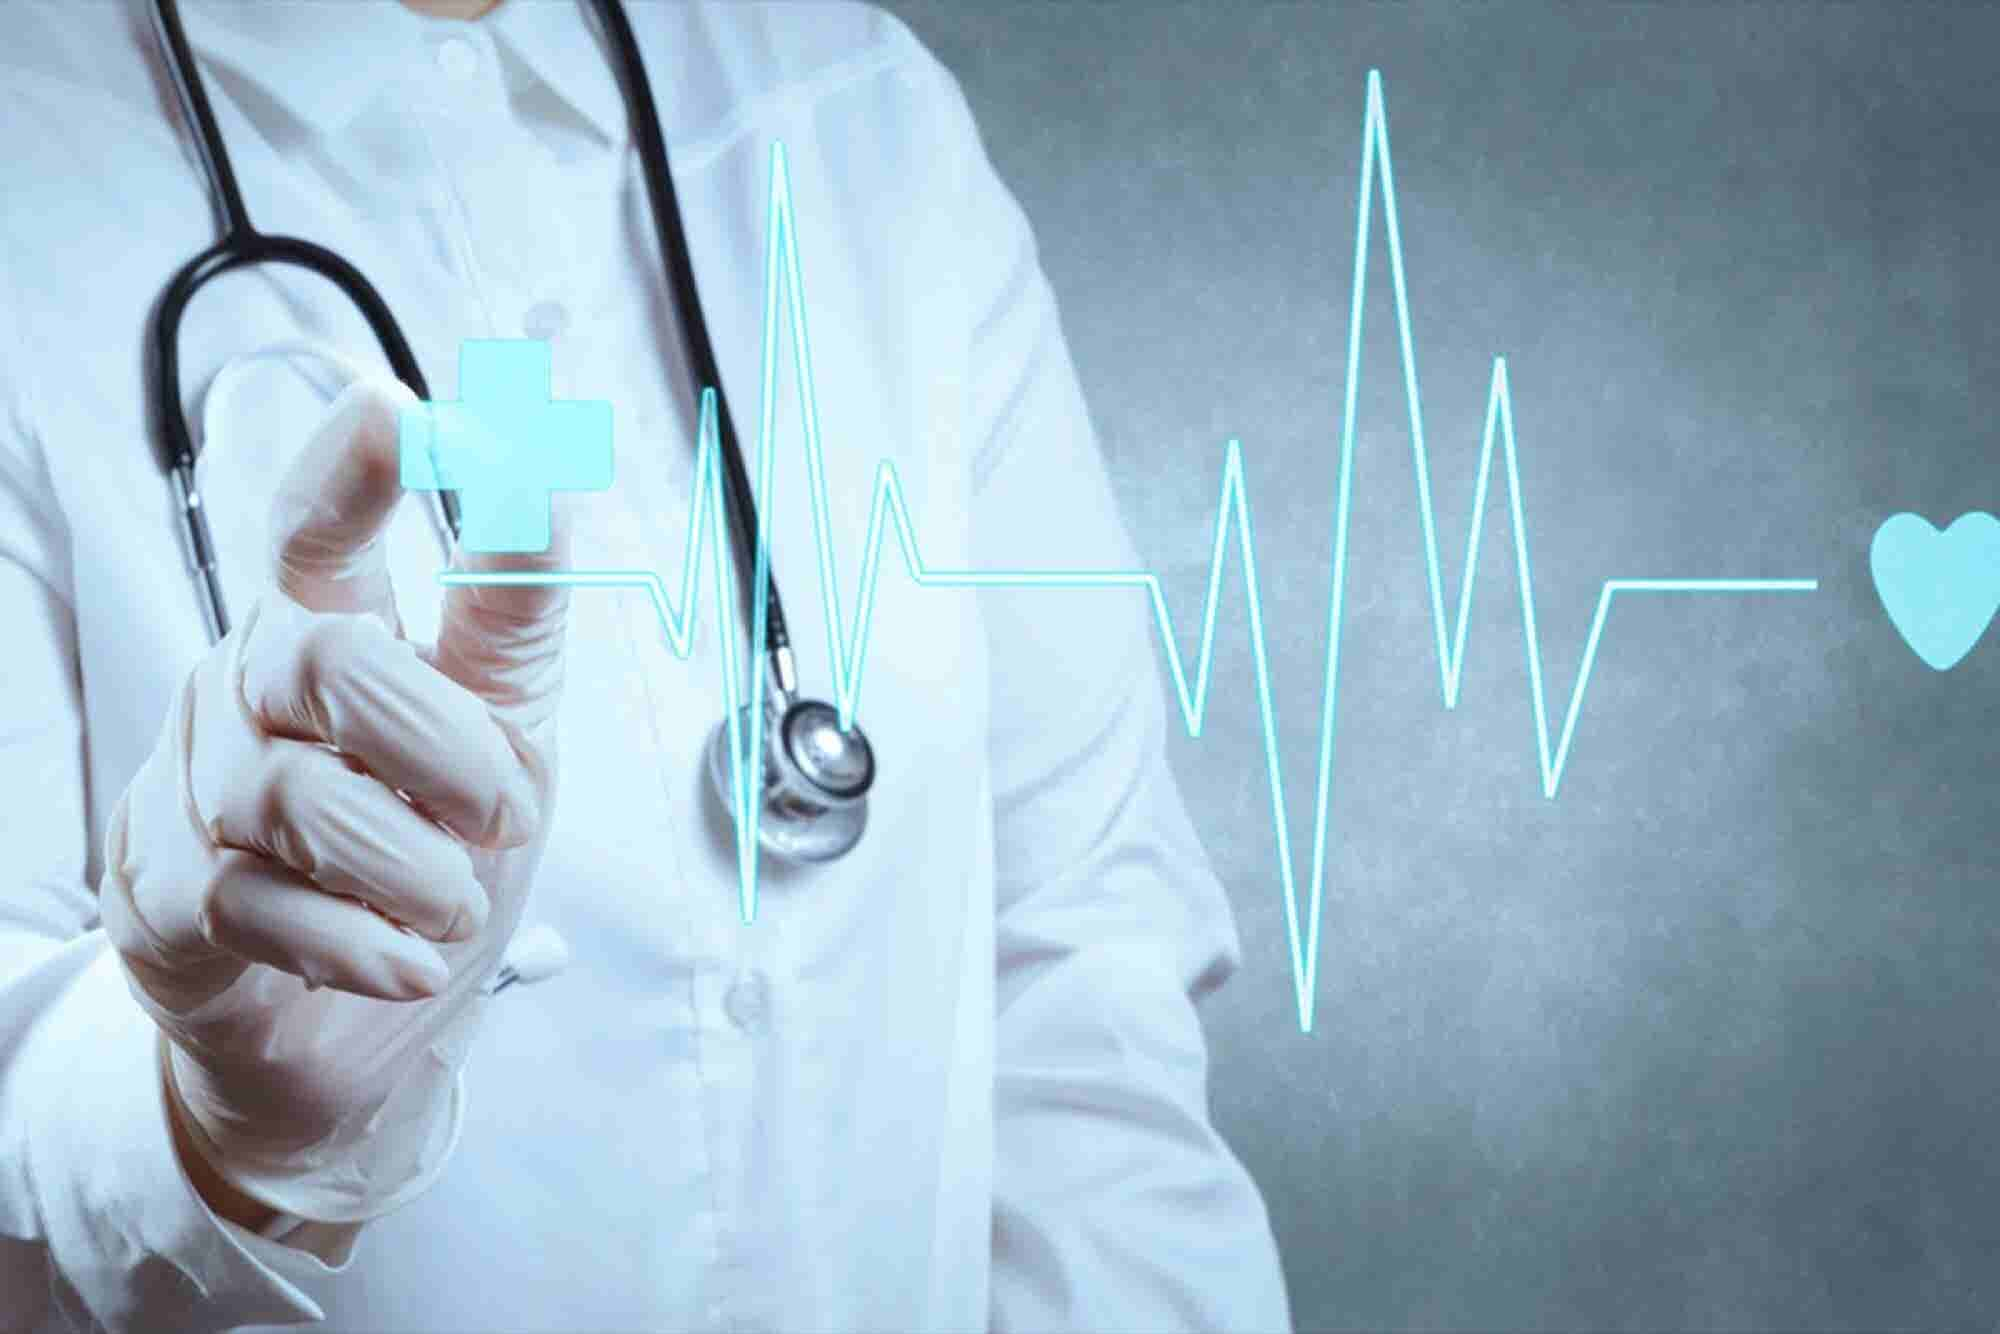 Looking For A Profitable Business In Healthcare Industry? Consider These Franchise Opportunities